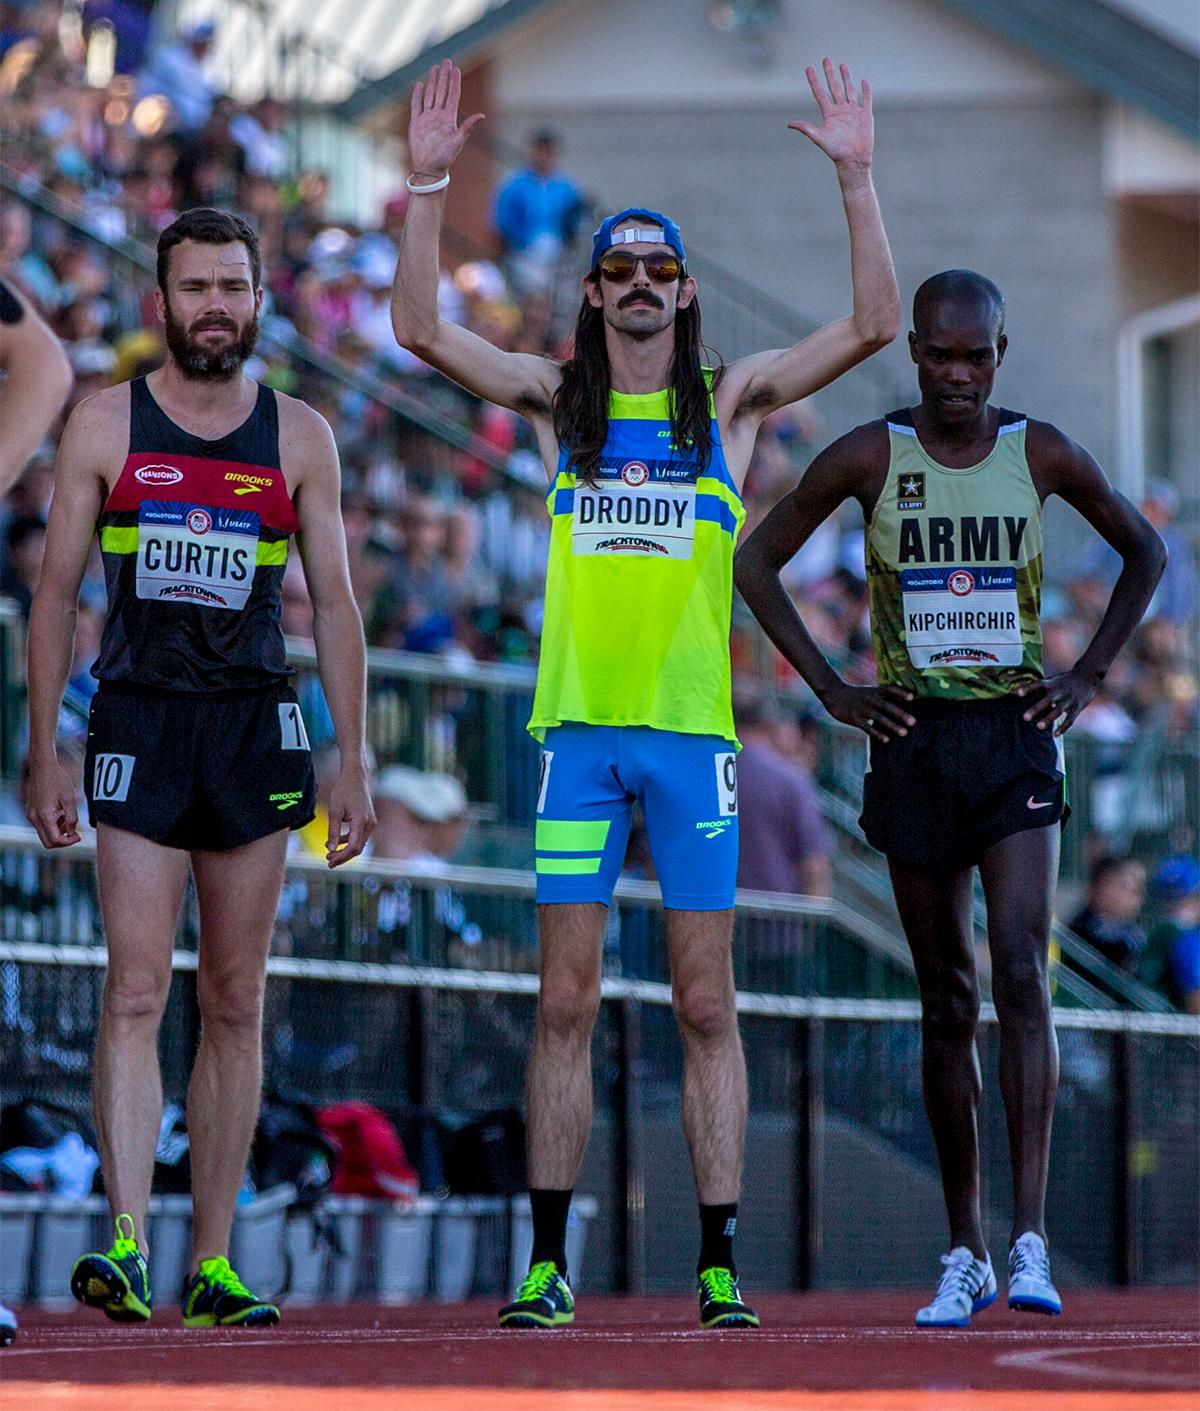 Noah Droddy may have been the lanterne rouge in Fridays 10,000 meter final. But in his race he captured many hearts with his unique hipster athlete style.